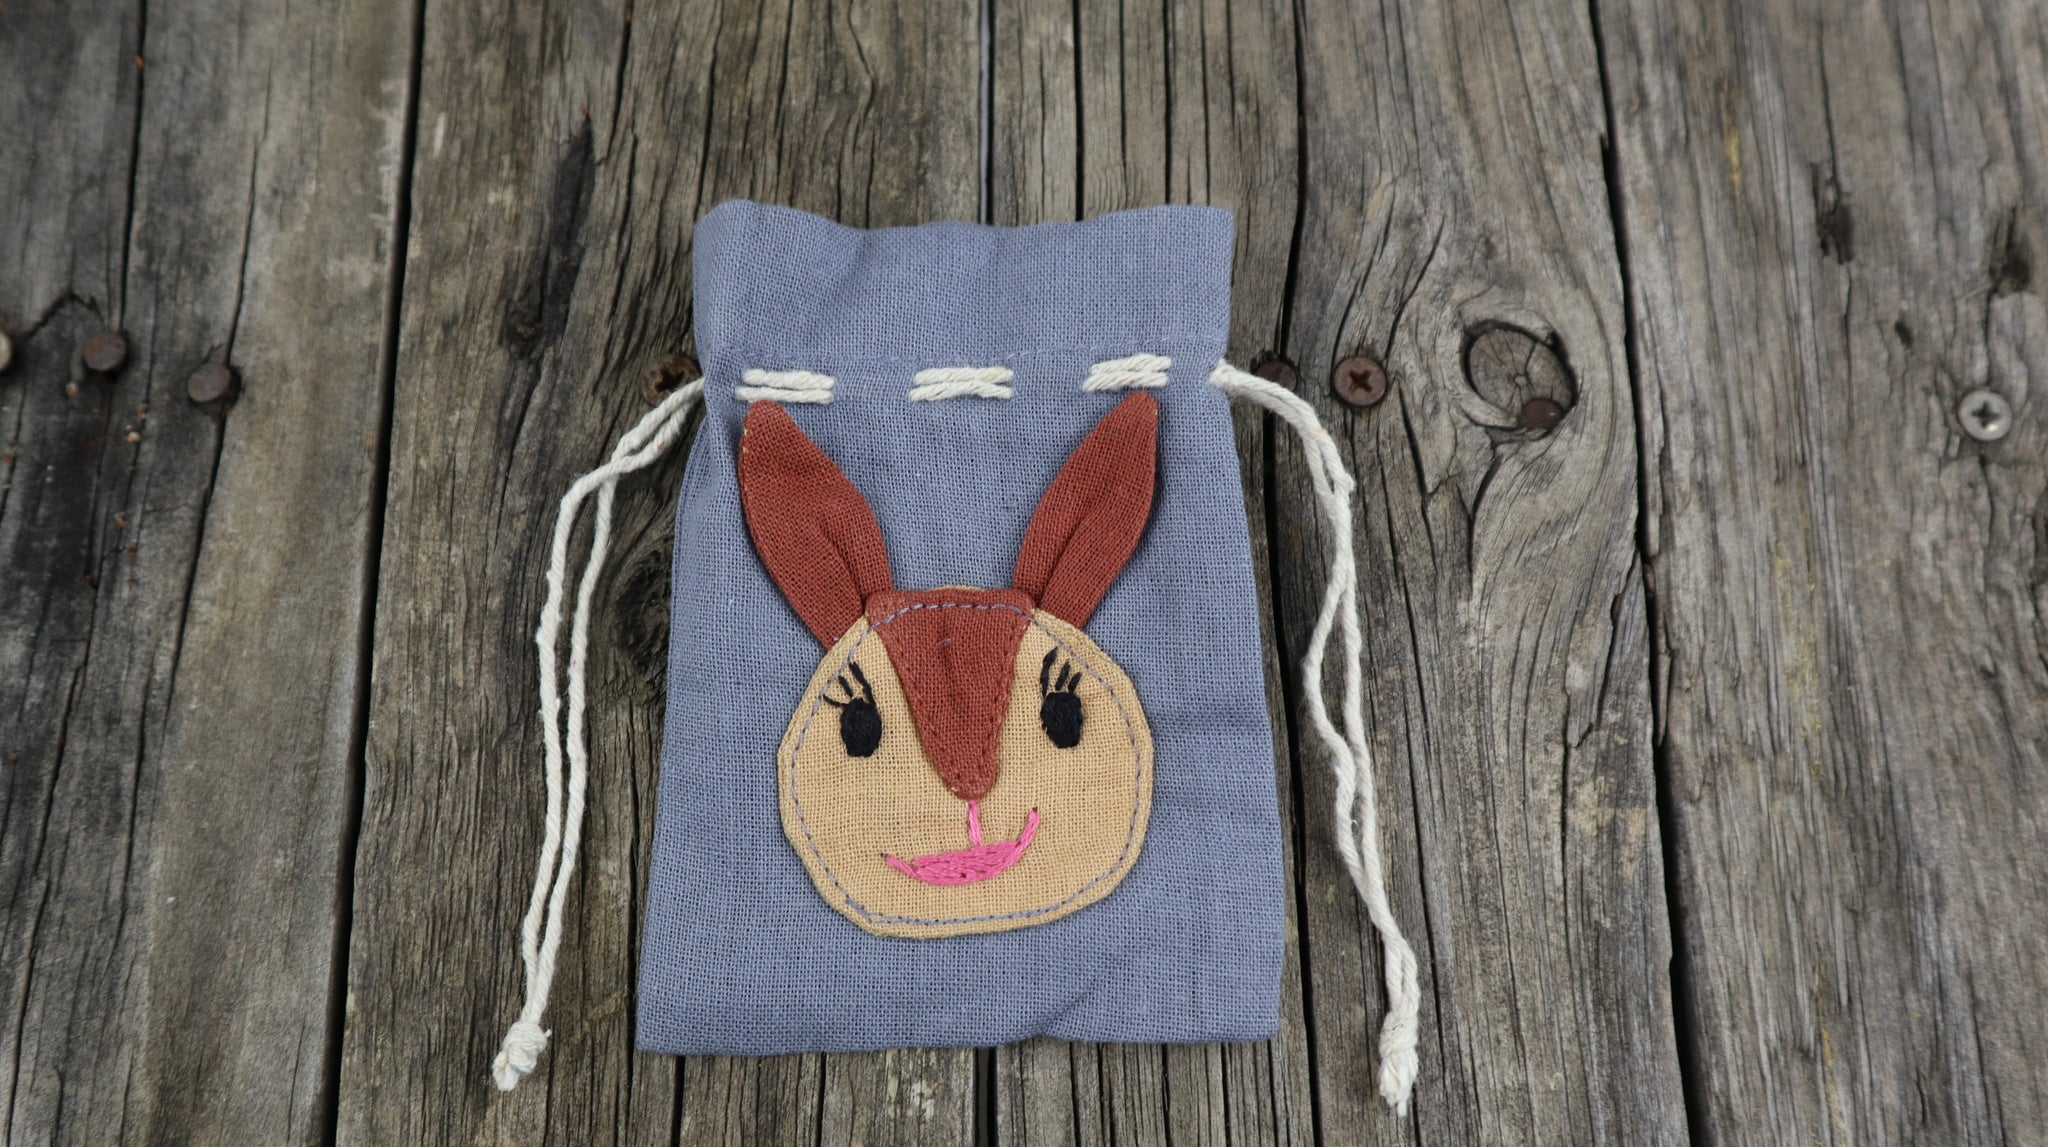 Fair Trade Ethical Small Cotton Gift Bag Kangaroo